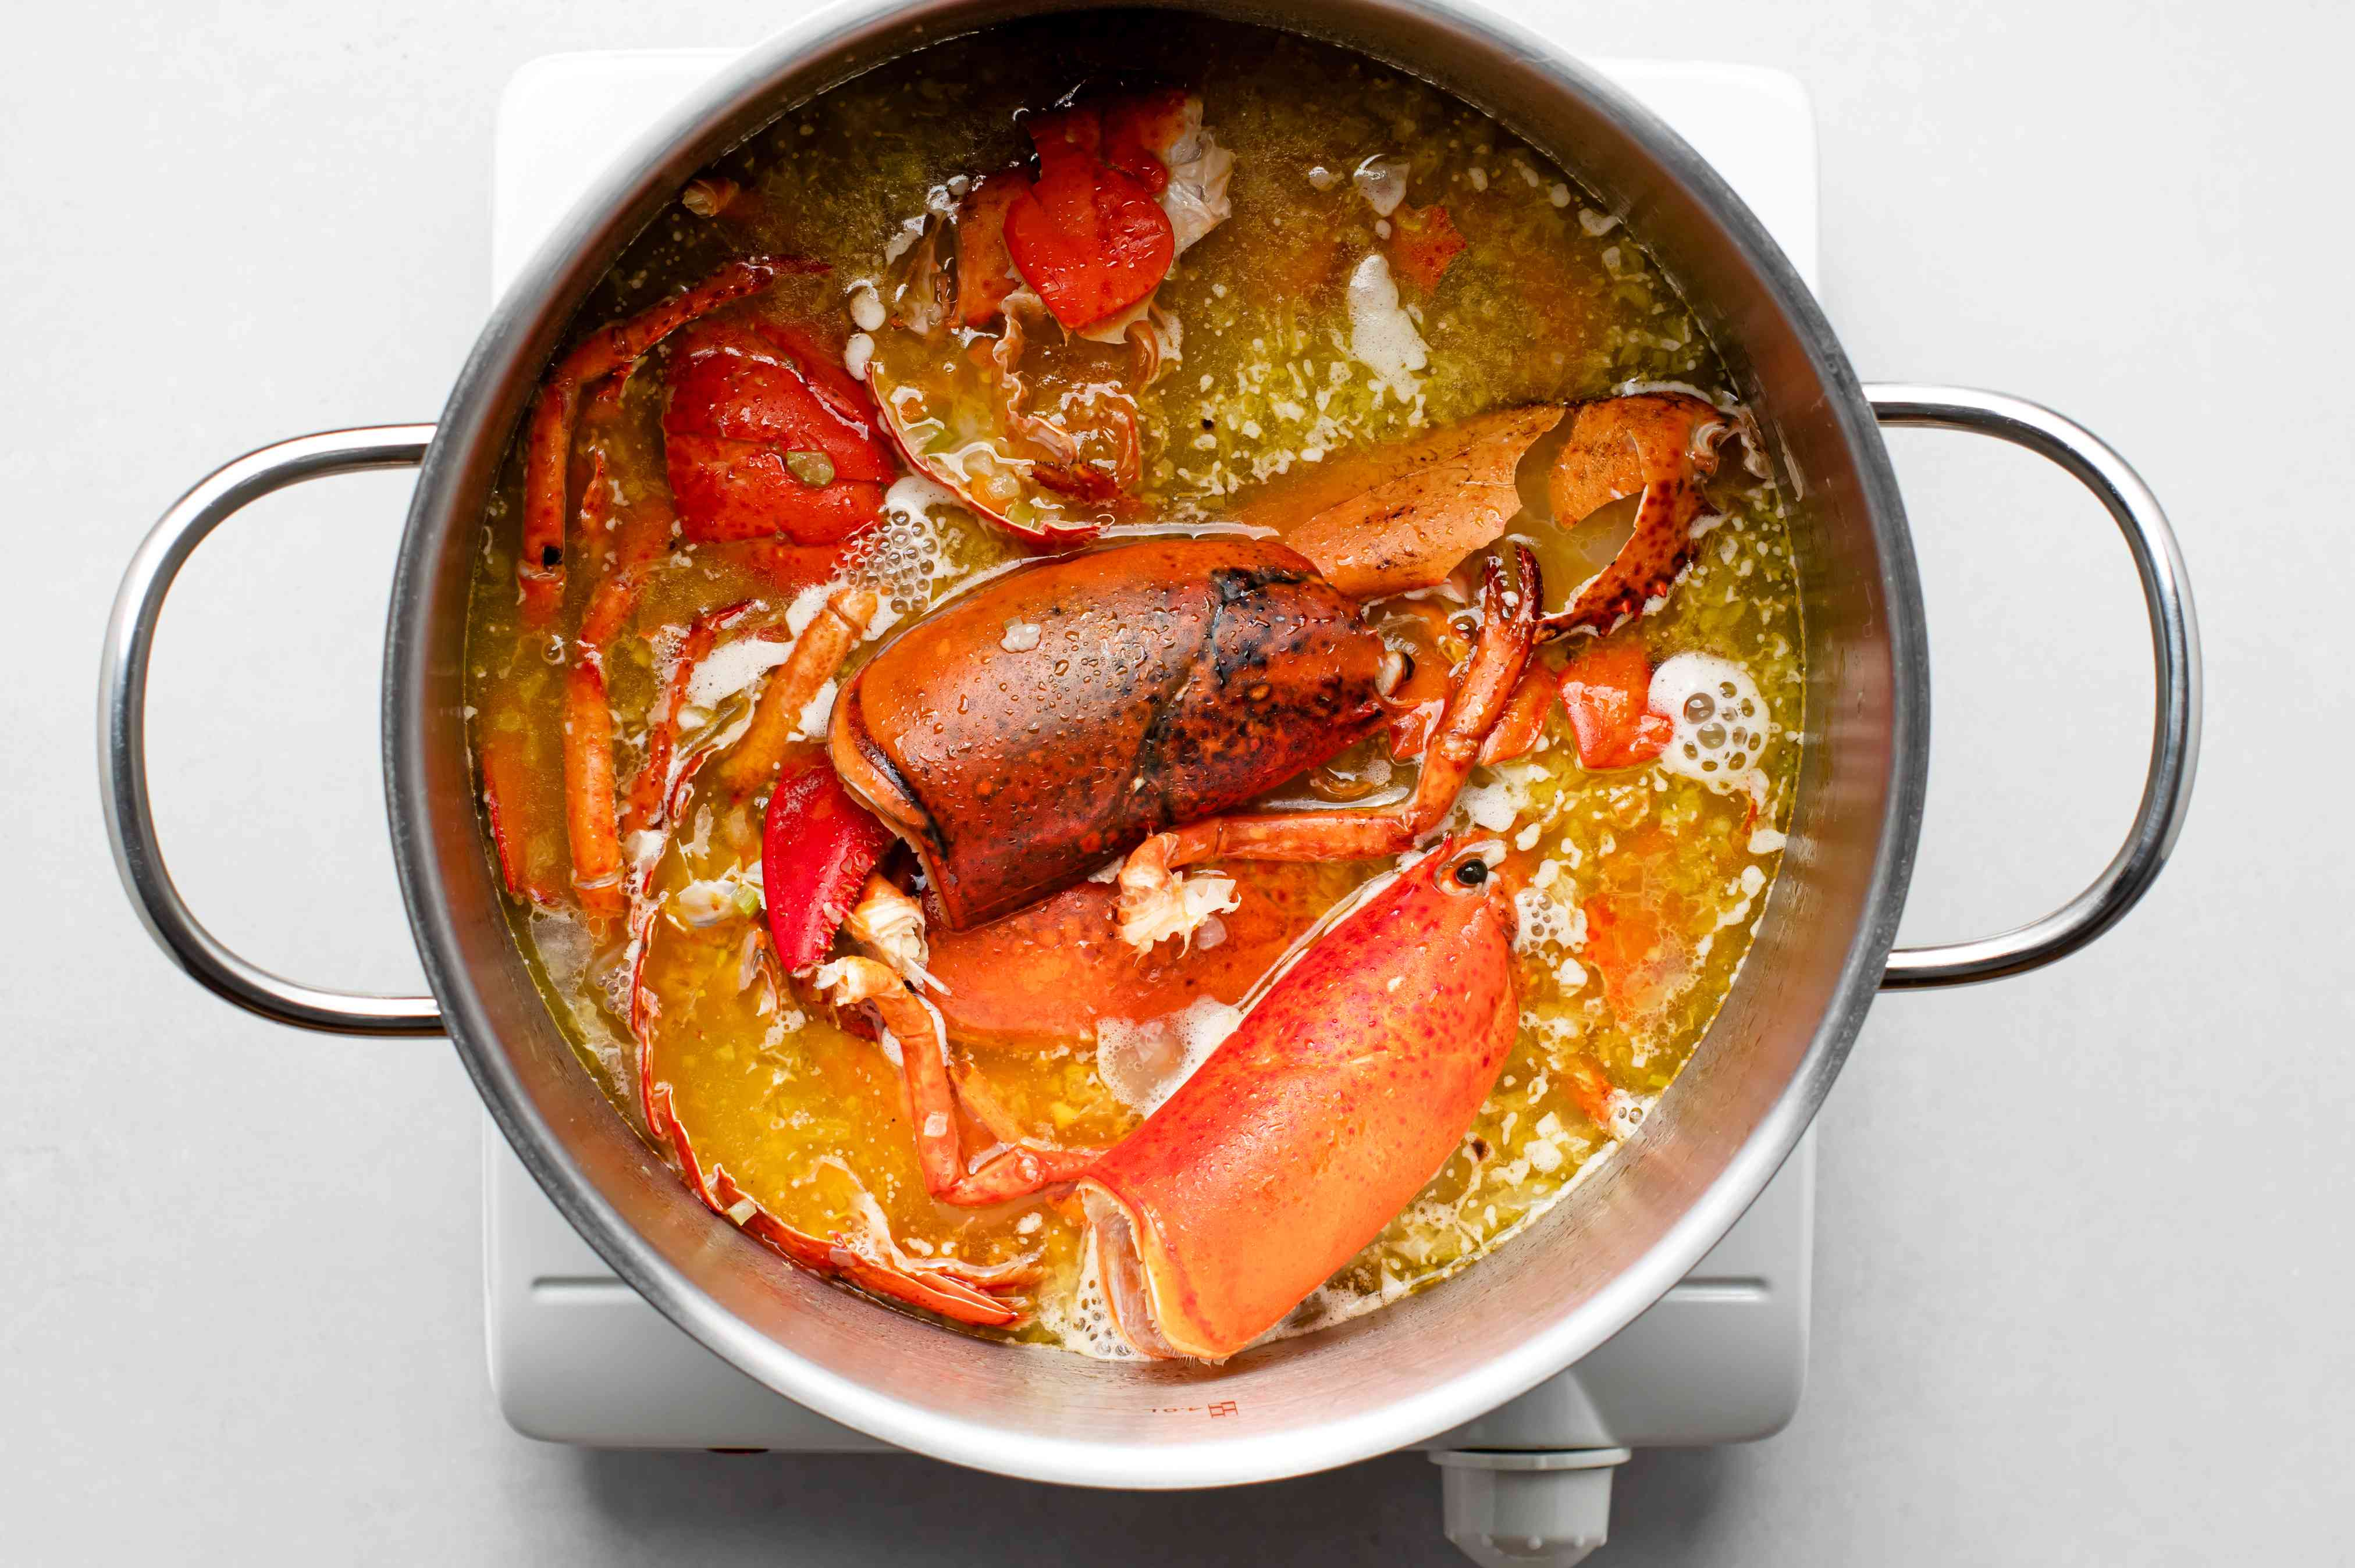 lobster shells and shrimp stock added to the stockpot mixture